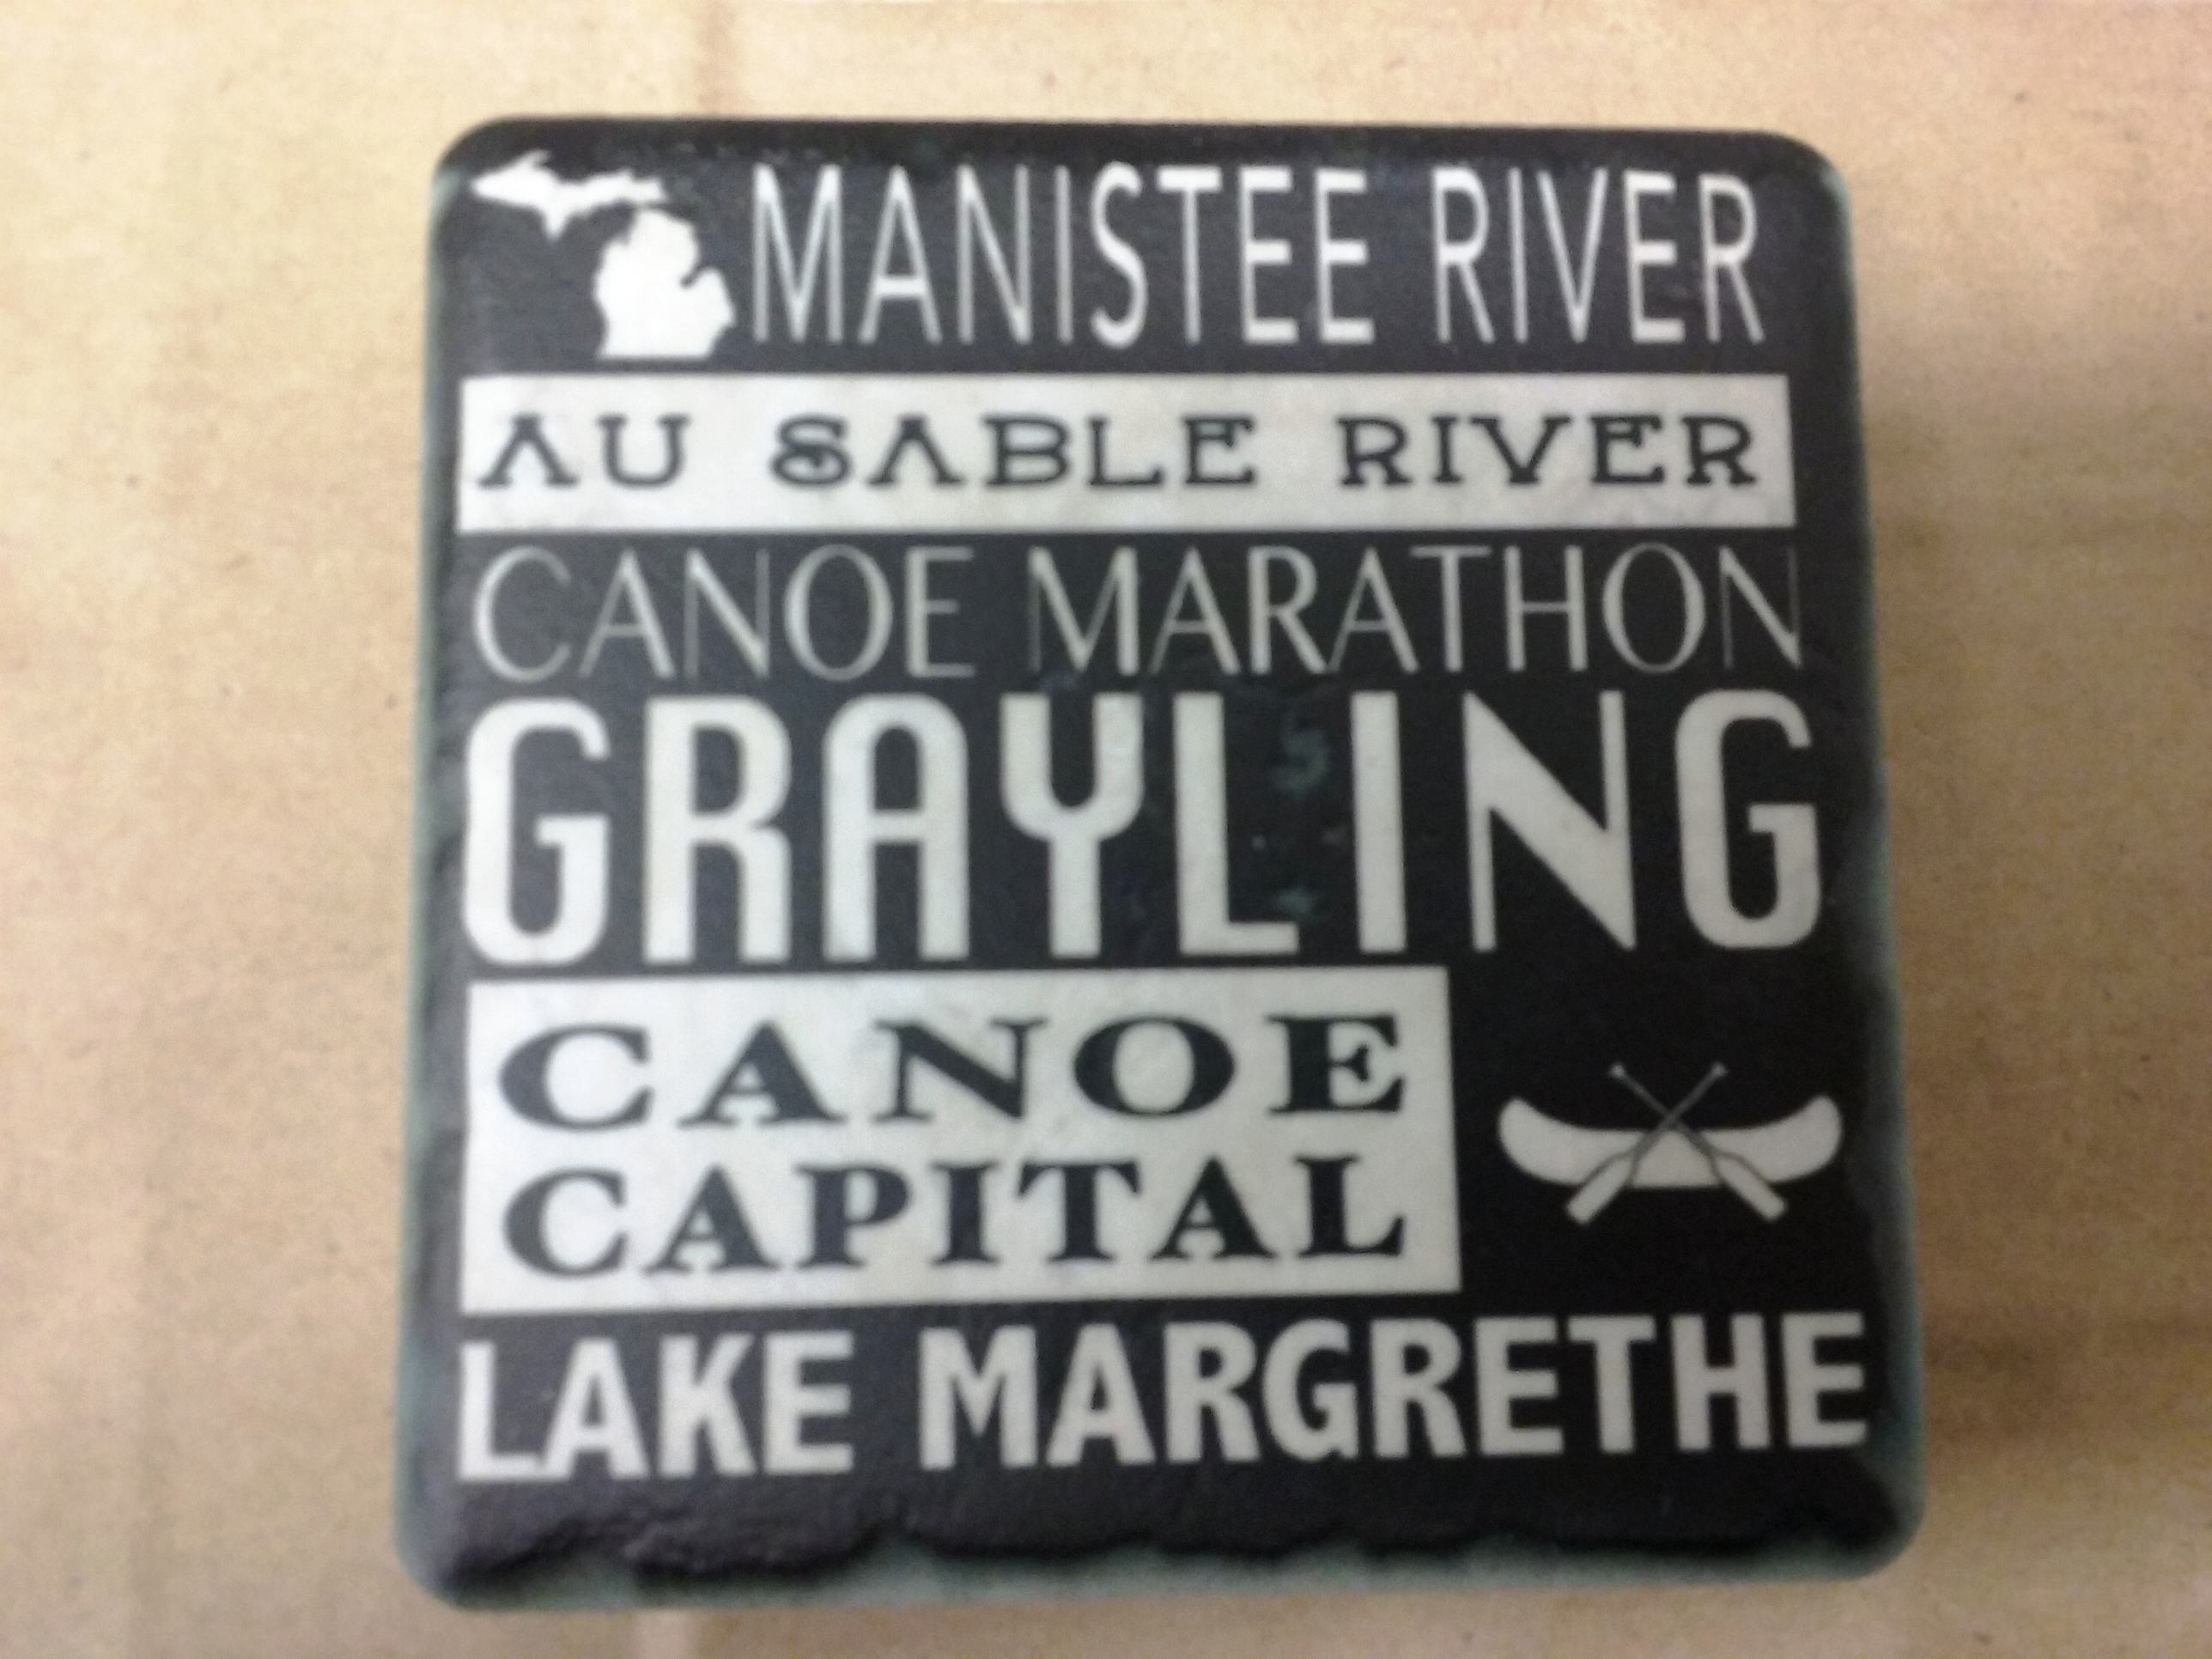 Grayling - Canoe Capital